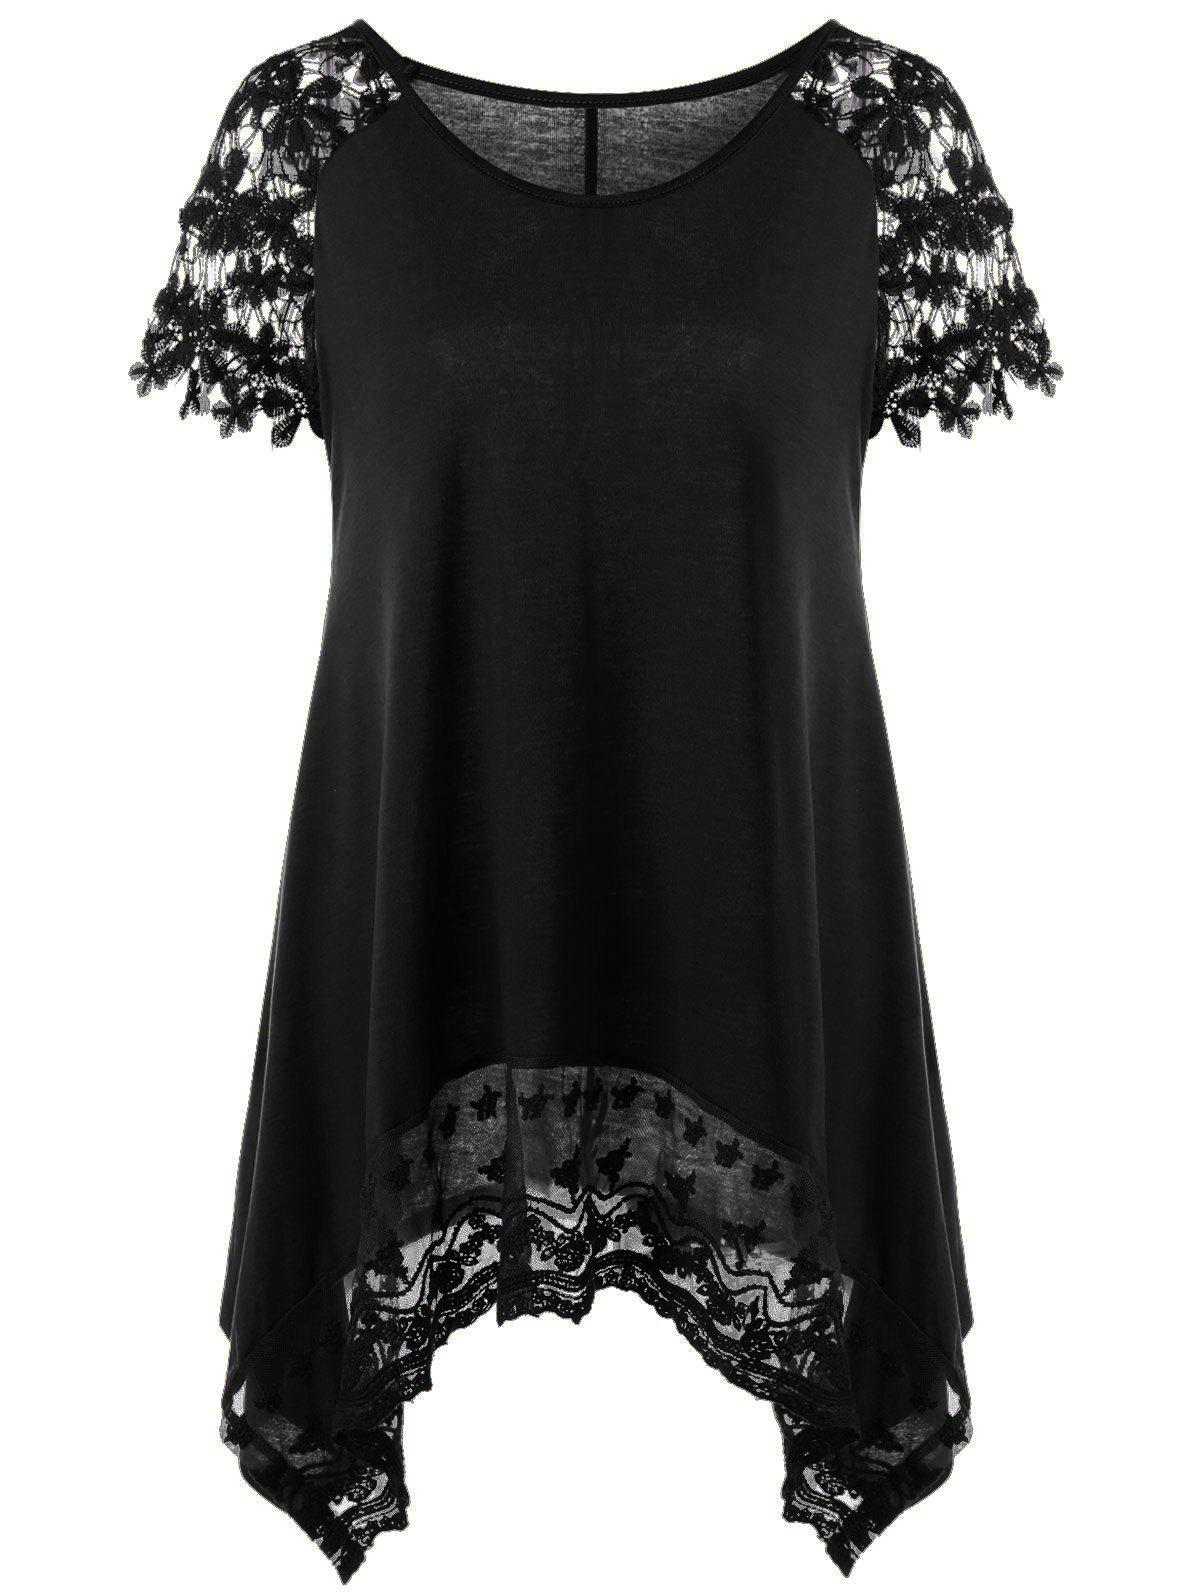 Plus Size Lace Trim Cutwork Asymmetrical Long T-ShirtWOMEN<br><br>Size: 4XL; Color: BLACK; Material: Polyester,Spandex; Shirt Length: Long; Sleeve Length: Short; Collar: Round Neck; Style: Casual; Season: Summer; Pattern Type: Floral; Weight: 0.3400kg; Package Contents: 1 x T-Shirt;